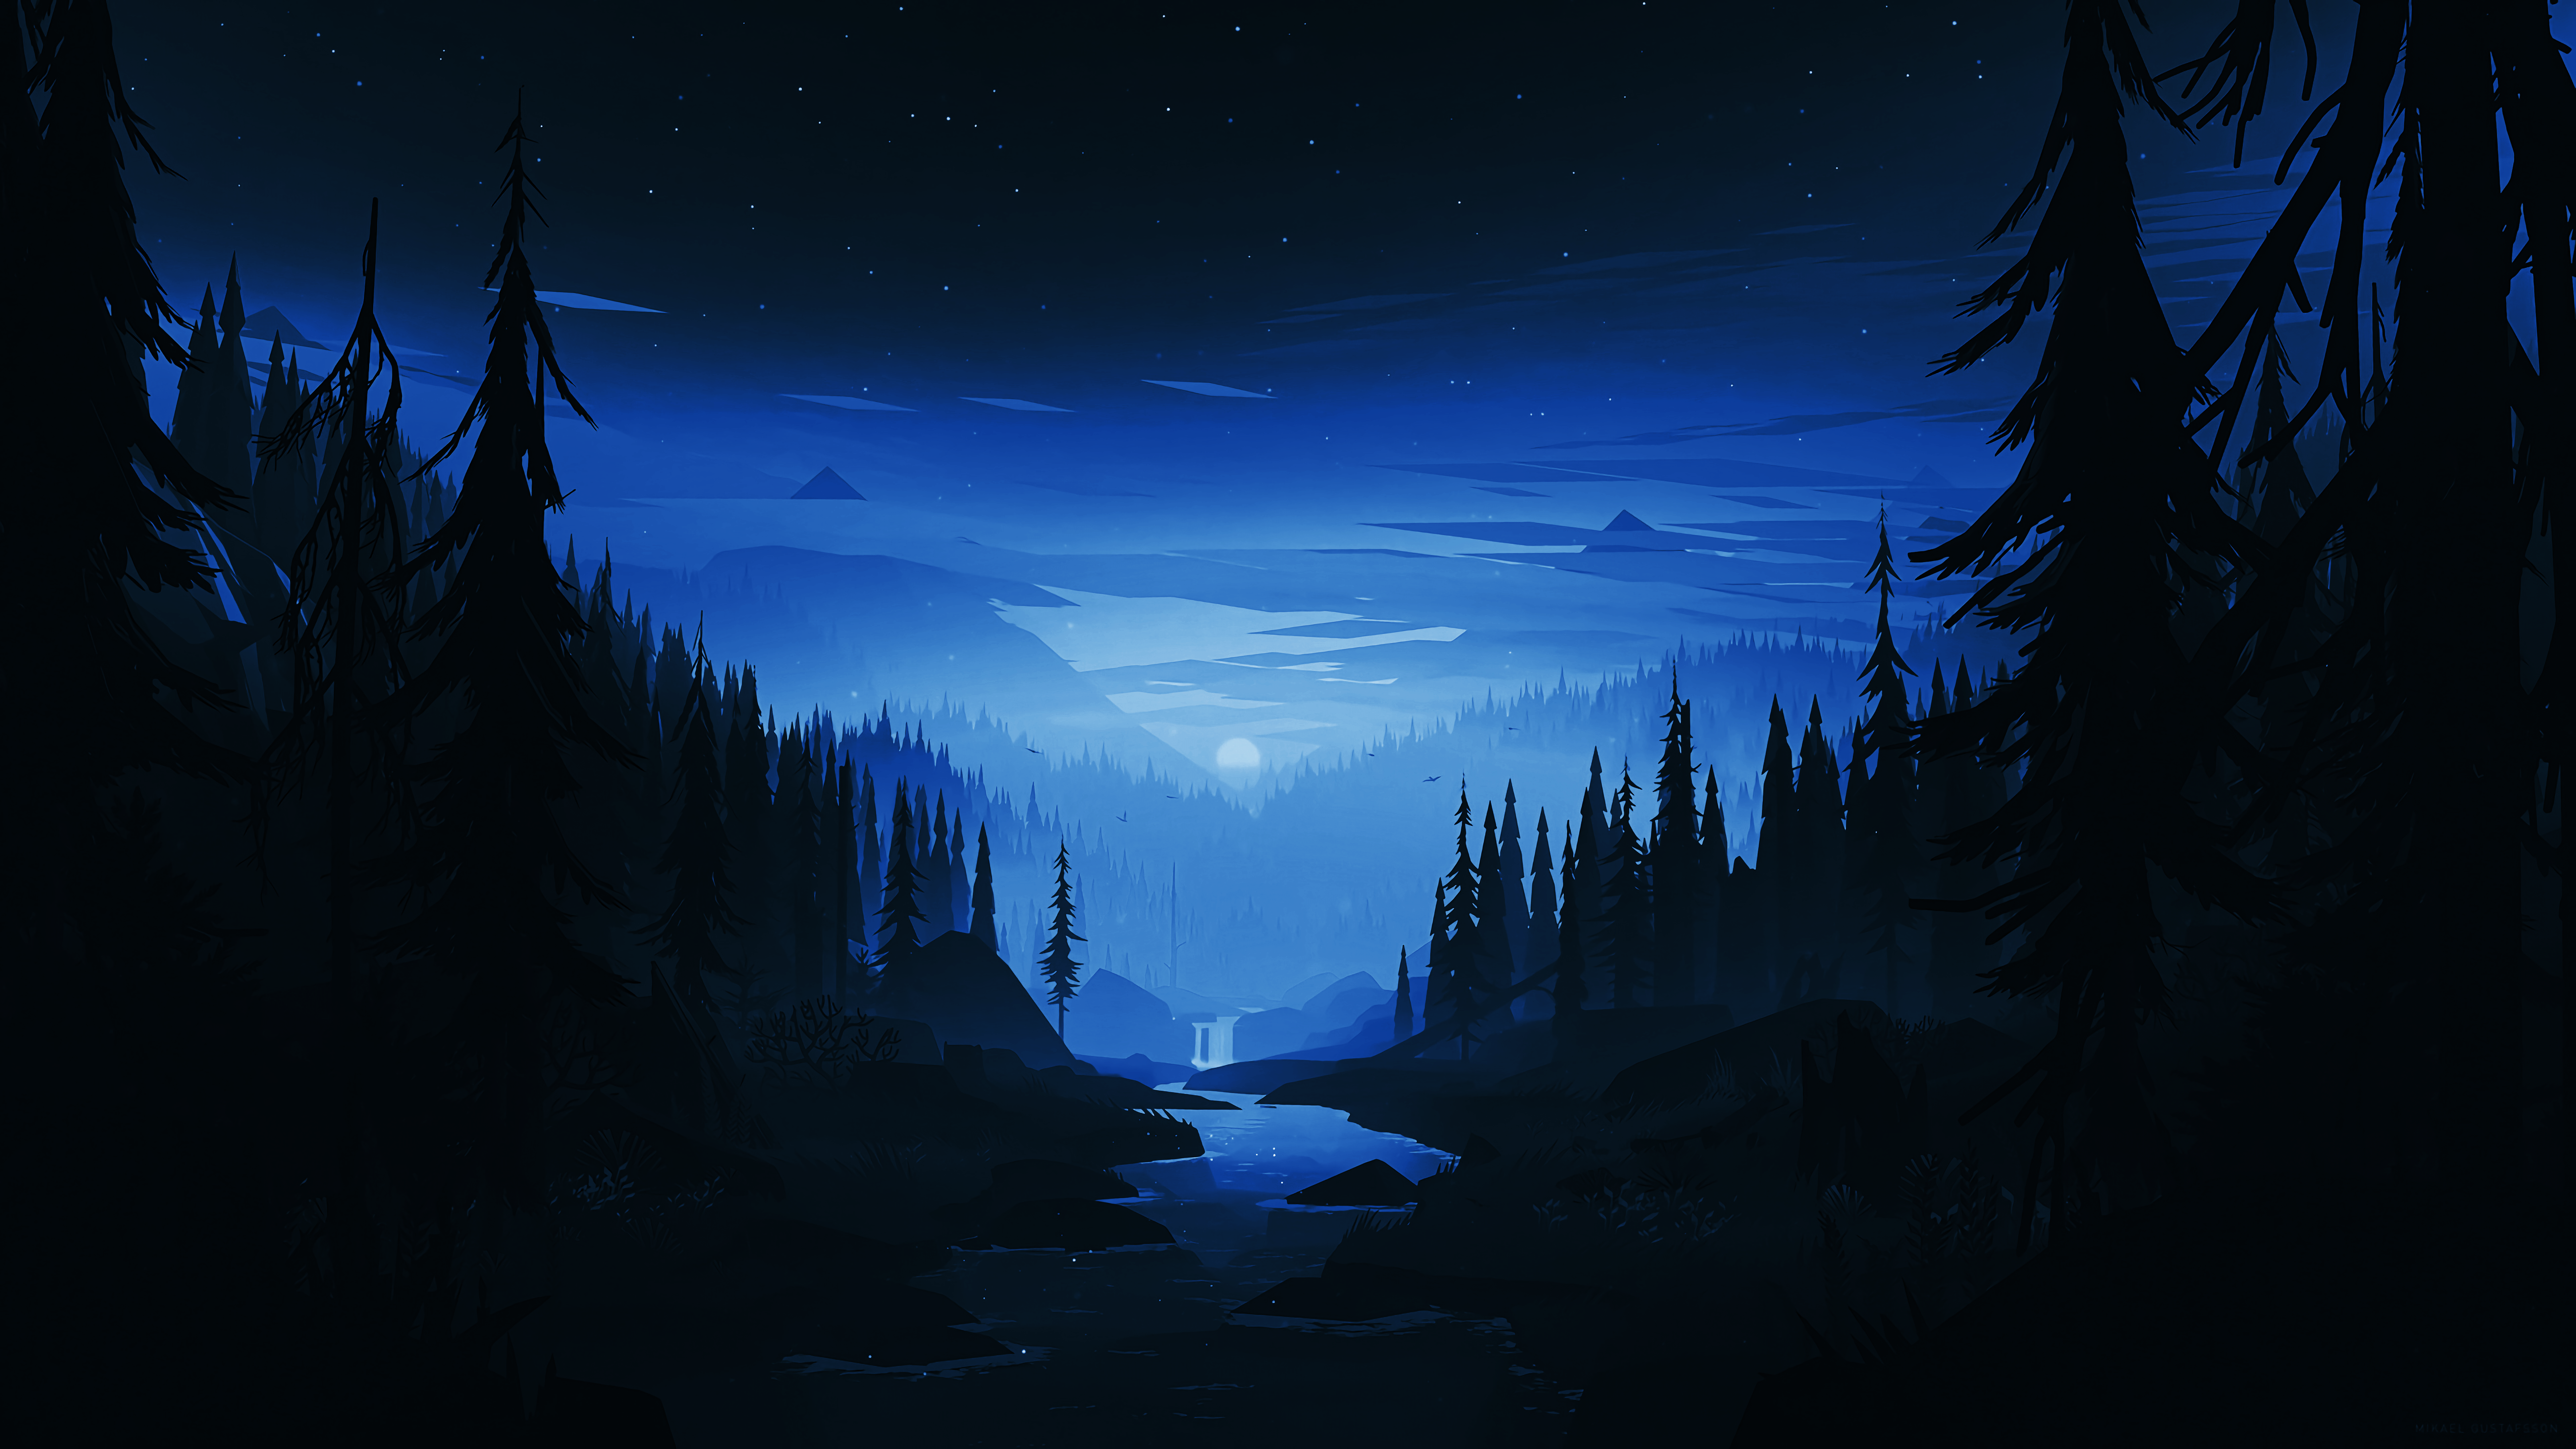 Winter Themed Version Of That One Wallpaper 7680x4320 Edit Made By U Hyperactive1duk Dark Landscape Landscape Wallpaper Desktop Wallpaper Art